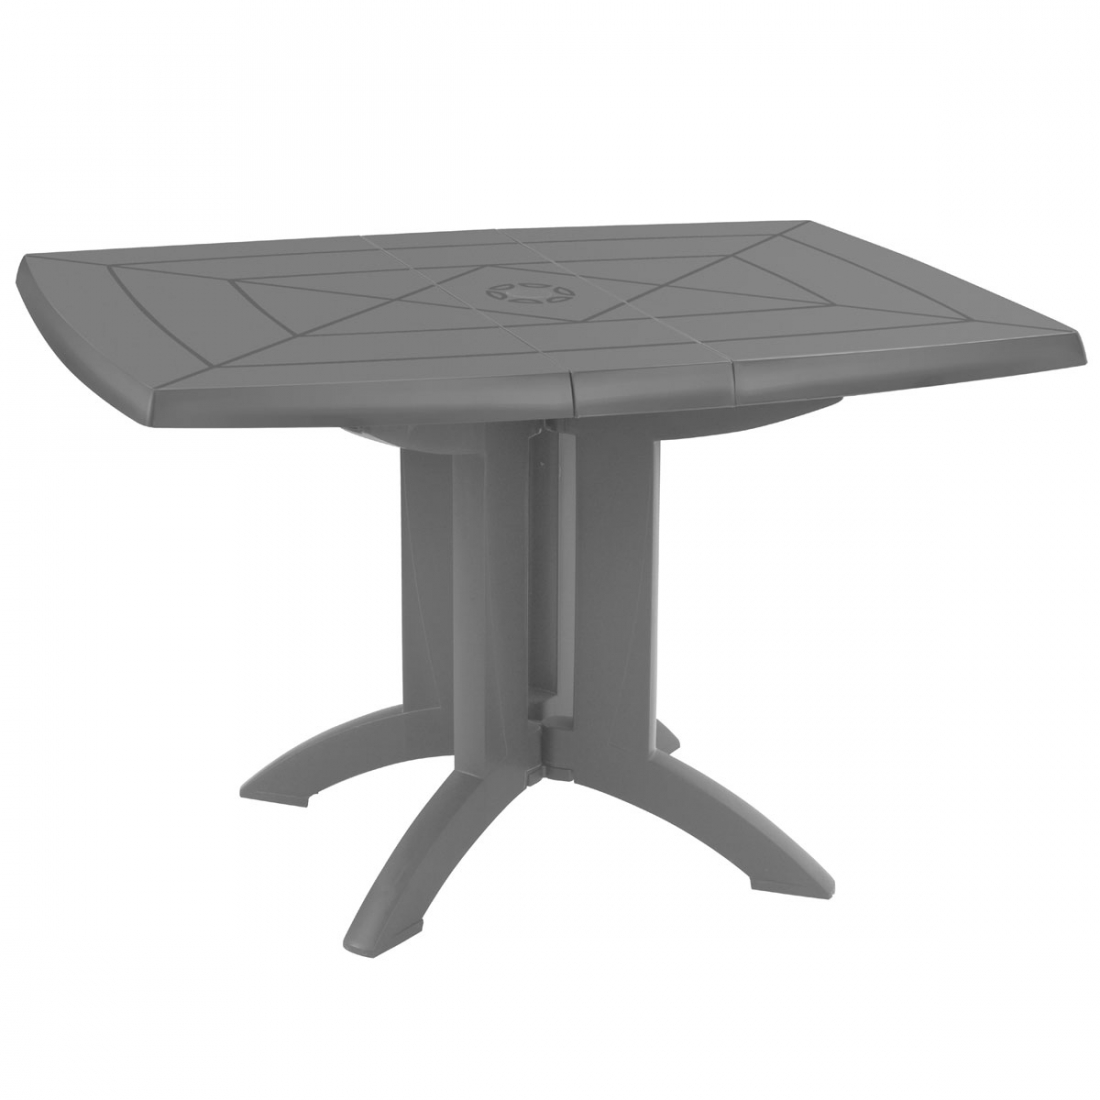 Table de jardin pliante vega grosfillex - Table de jardin de couleur ...